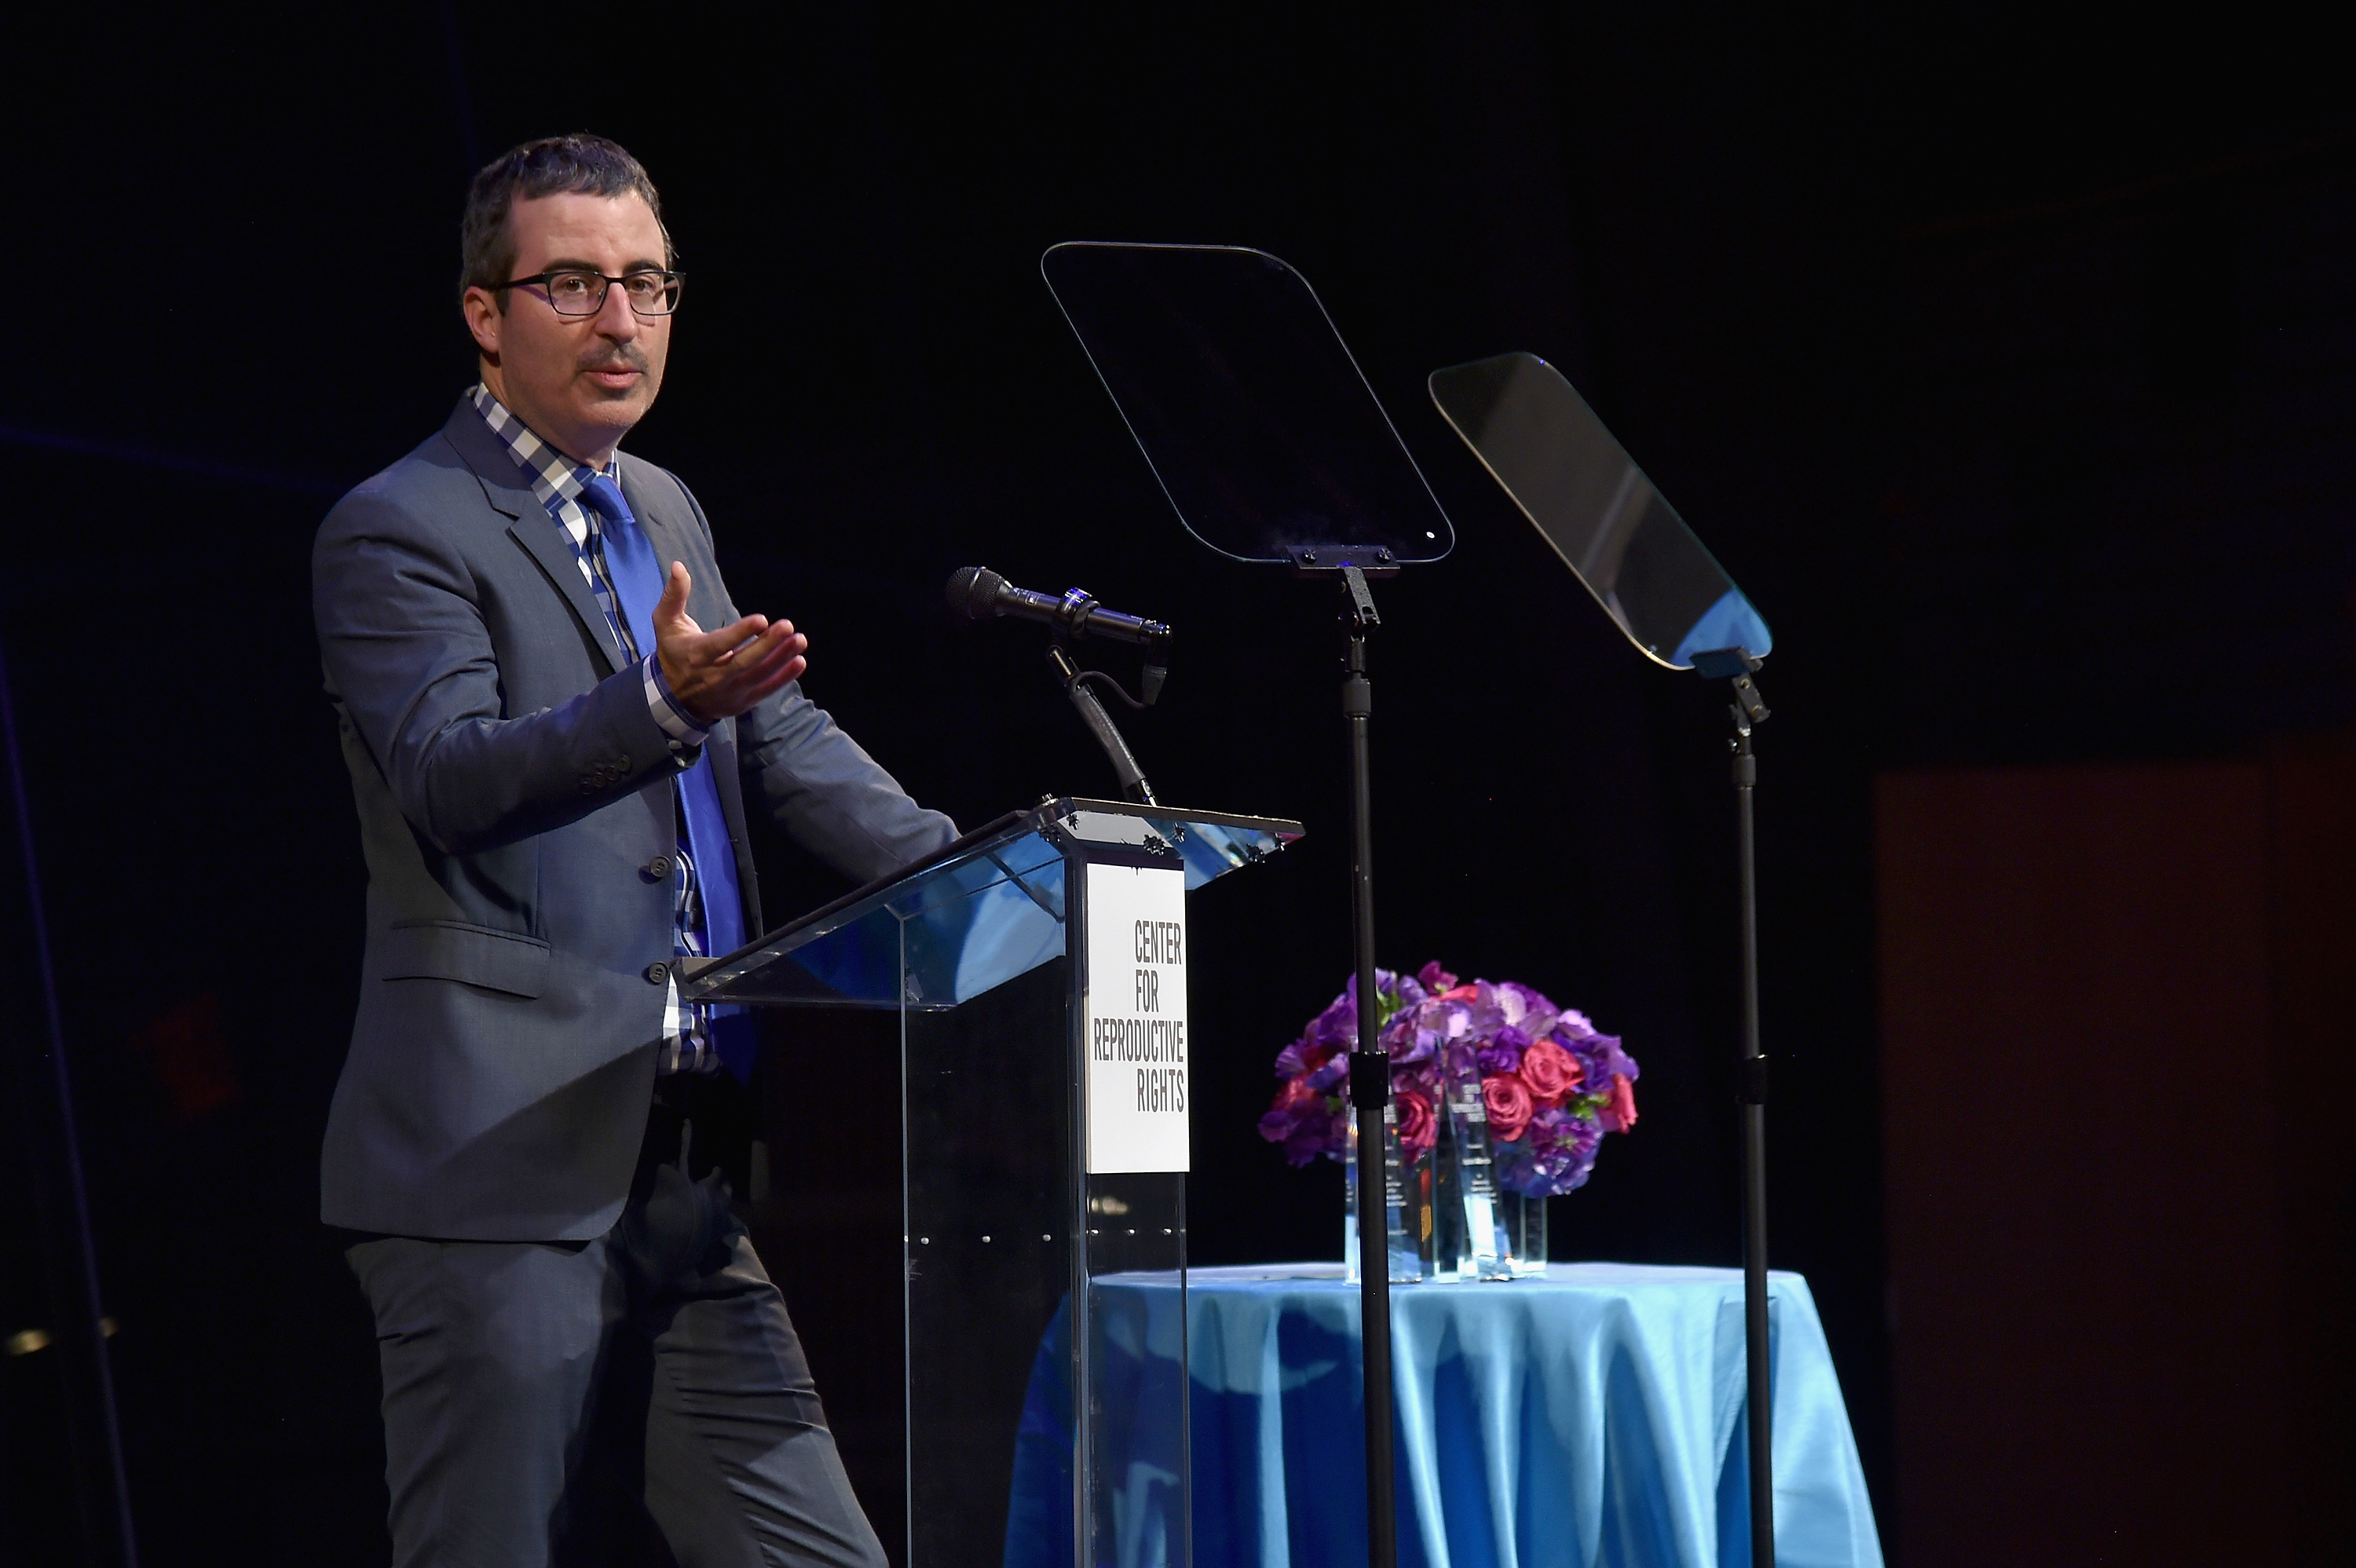 John Oliver speaks onstage at The Center for Reproductive Rights 2016 Gala at the Jazz at Lincoln Center on October 25, 2016 in New York City.